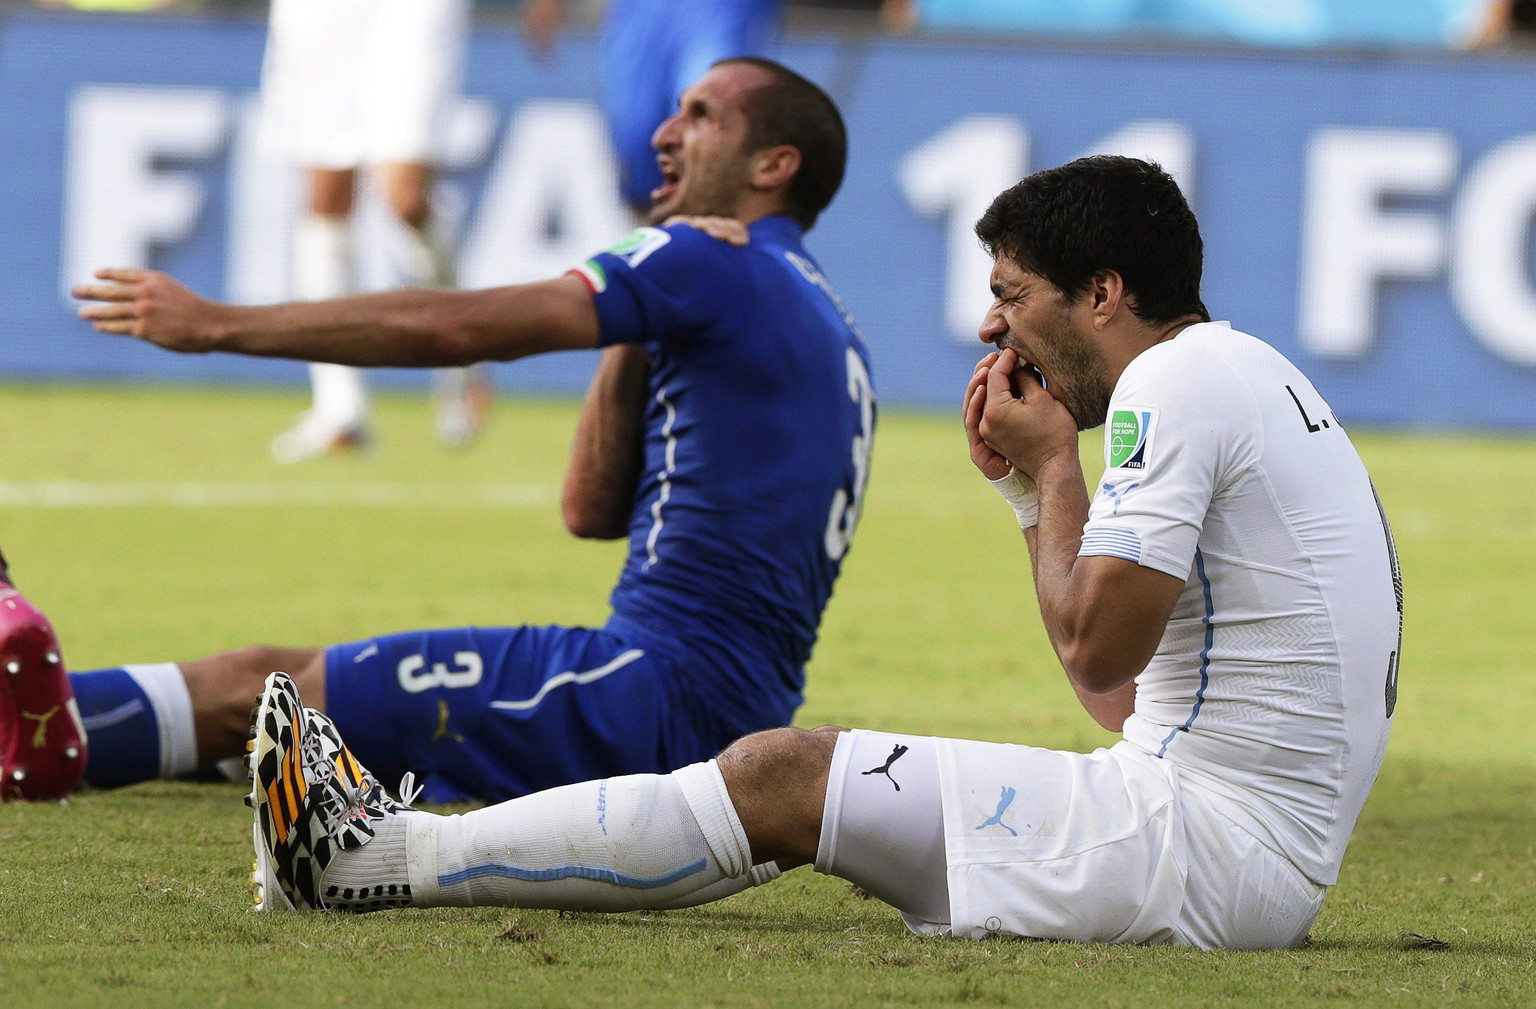 epa04278252 Italy's Giorgio Chiellini (L) claims he was bitten by Uruguay's Luis Suarez (R) during the FIFA World Cup 2014 group D preliminary round match between Italy and Uruguay at the Estadio Arena das Dunas in Natal, Brazil, 24 June 2014. 